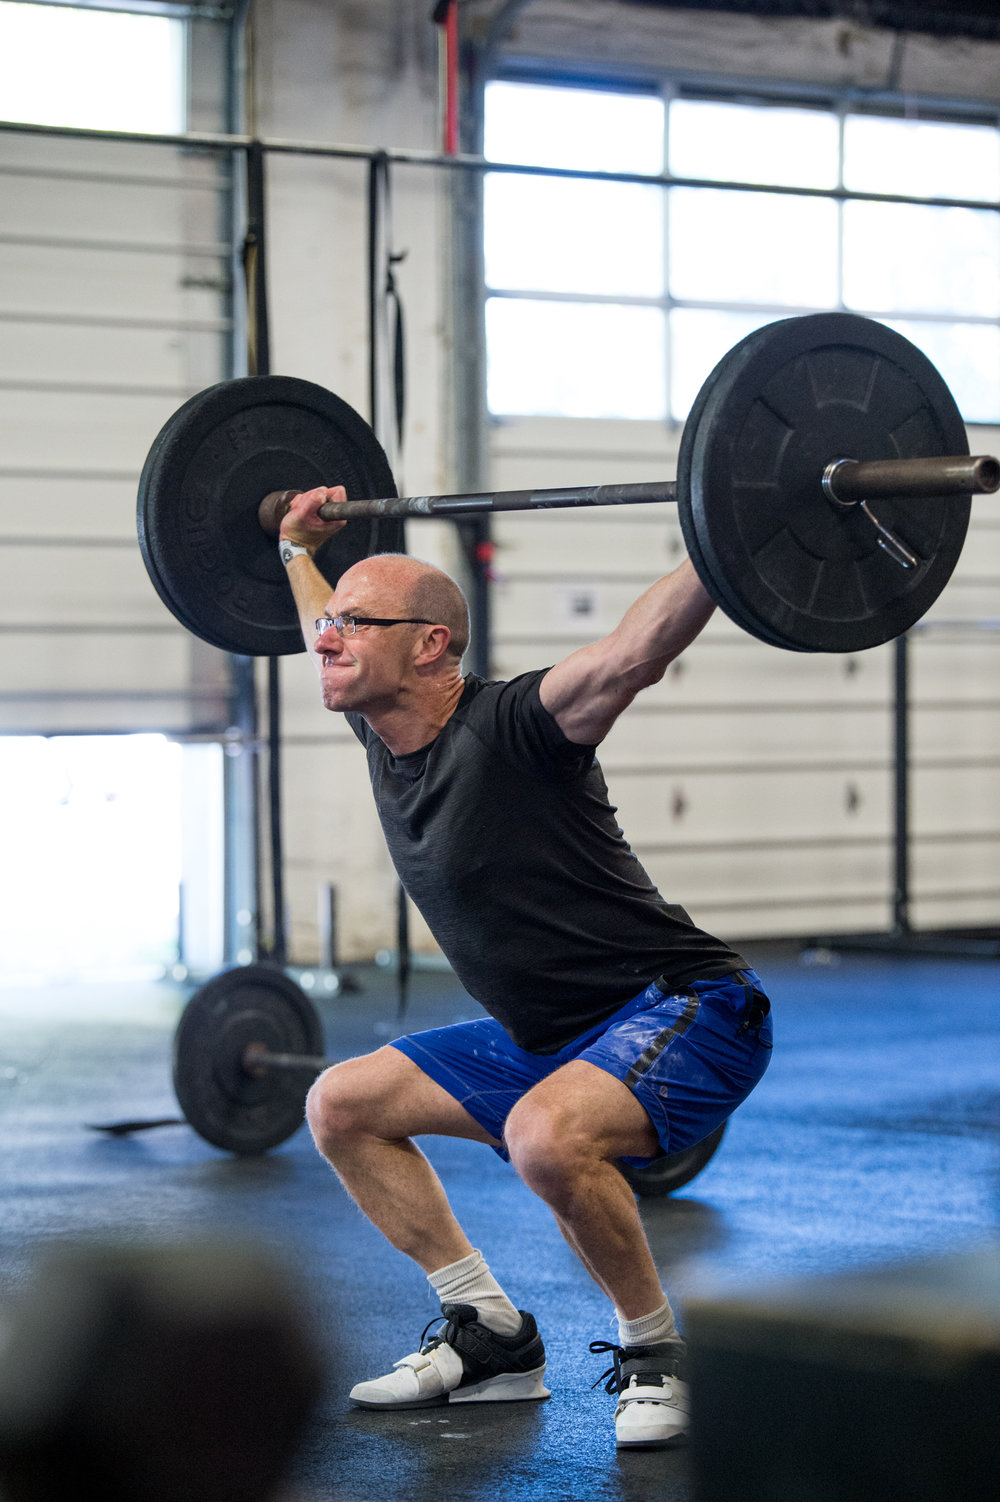 Paul is the picture of dedicated practice in attacking his weaknesses. His overhead squat gets better and better.